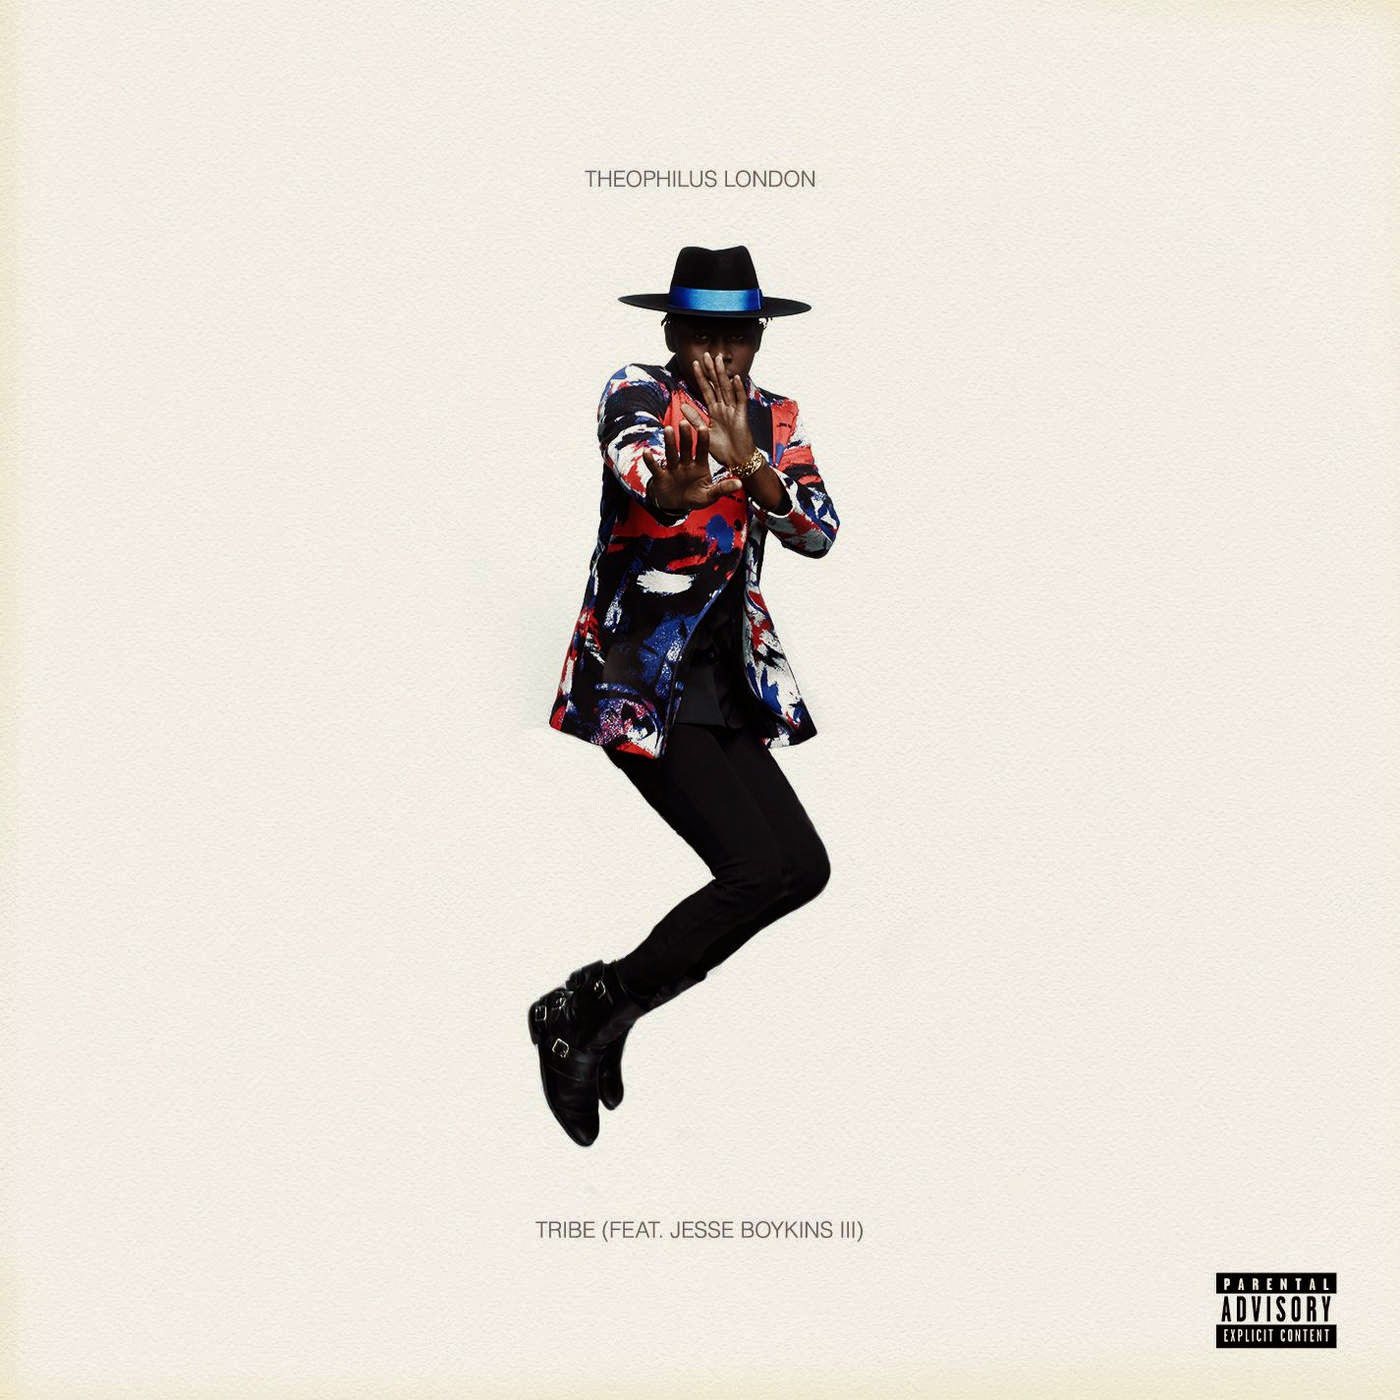 Theophilus London - Tribe (feat. Jesse Boykins III) - Single Cover